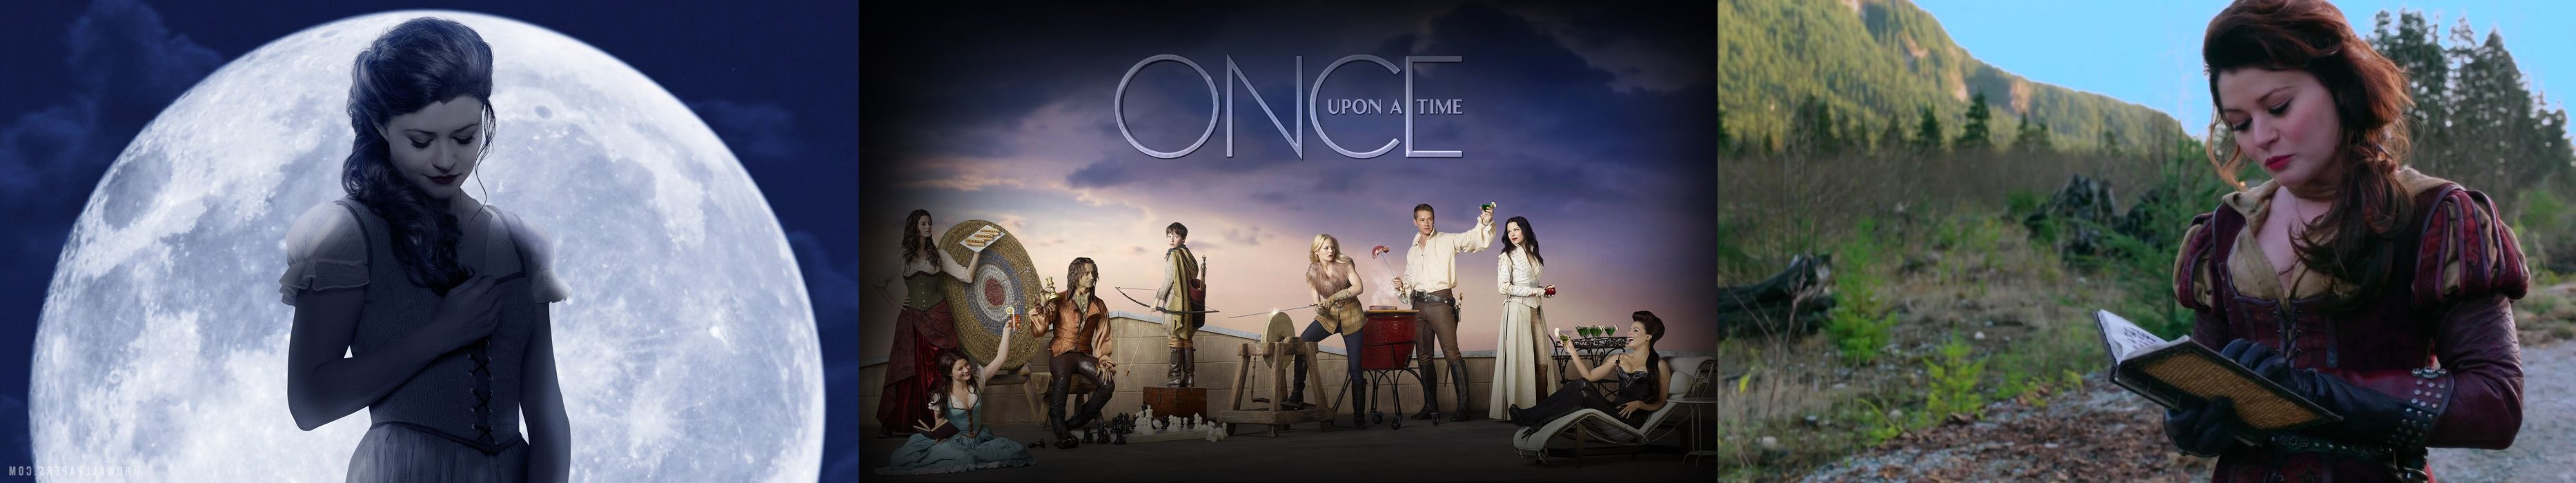 wallpaper tiple three multi multiple monitor screen tv television serie once upon a time il etait une fois wallpaper